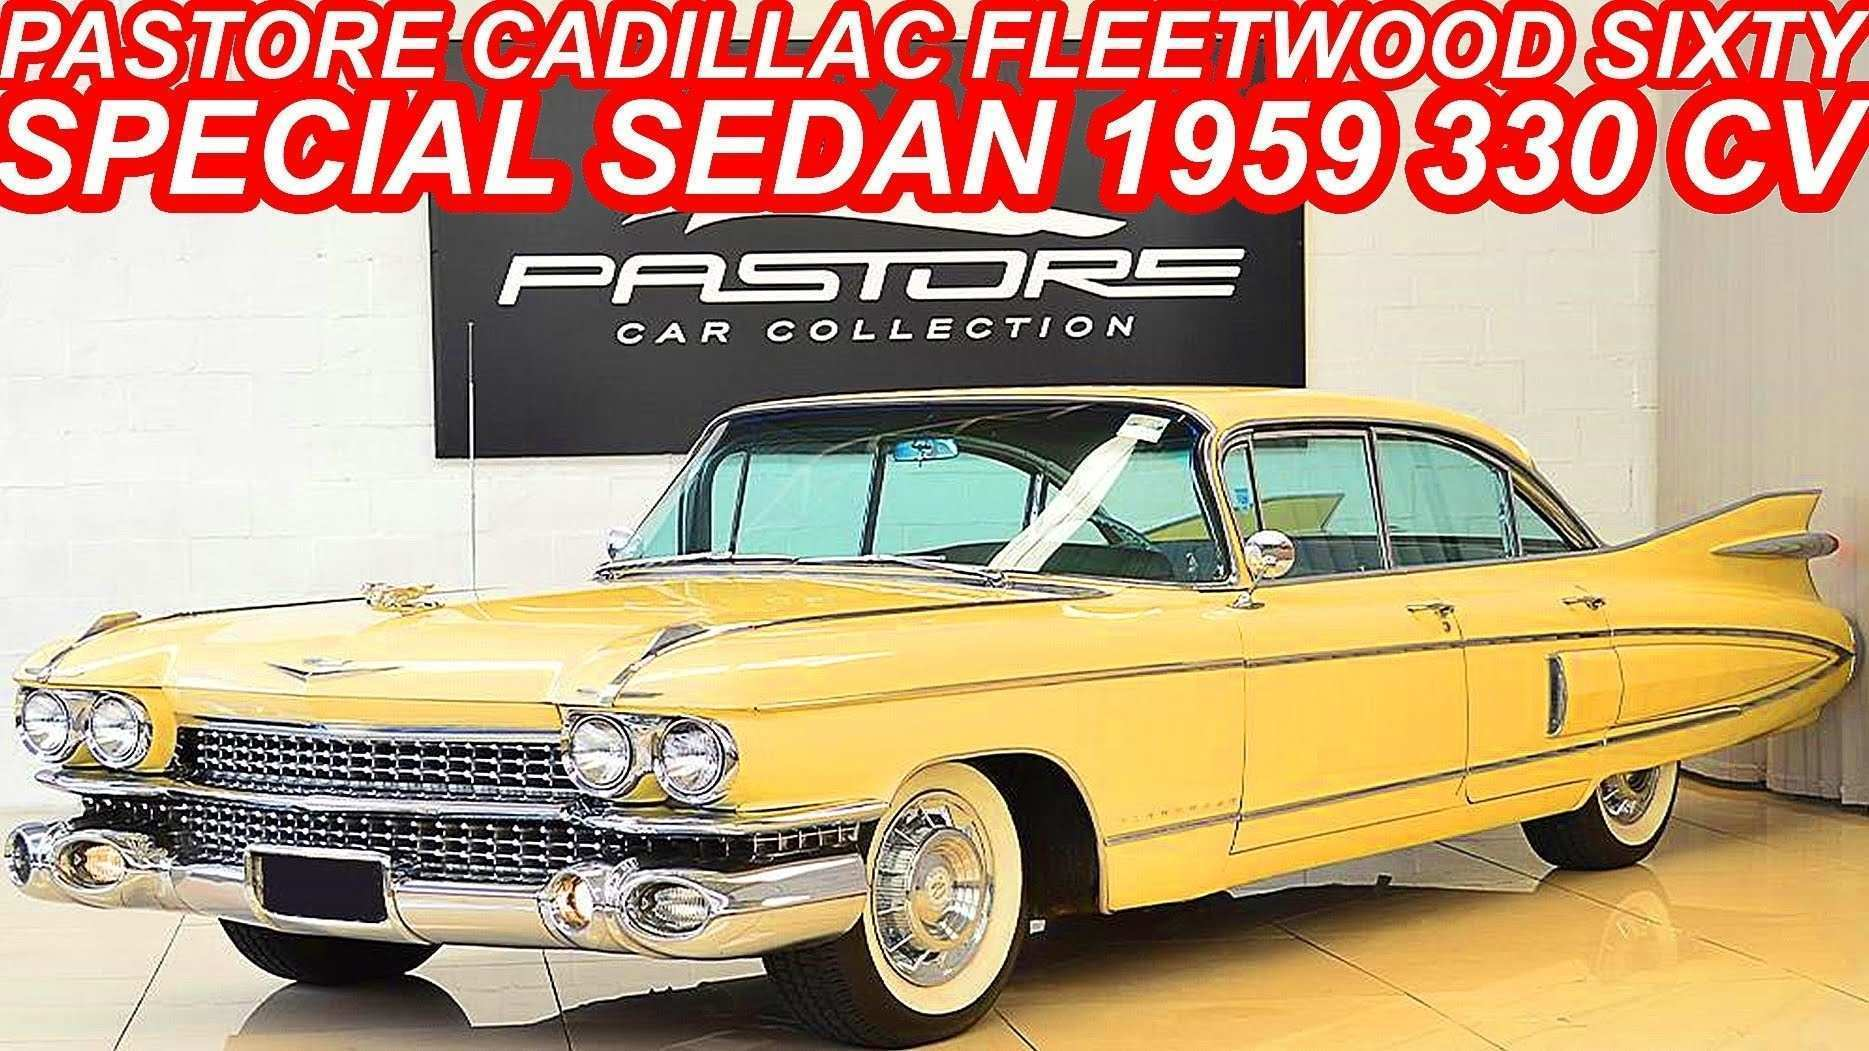 30 All New 2019 Cadillac Fleetwood Series 75 Specs